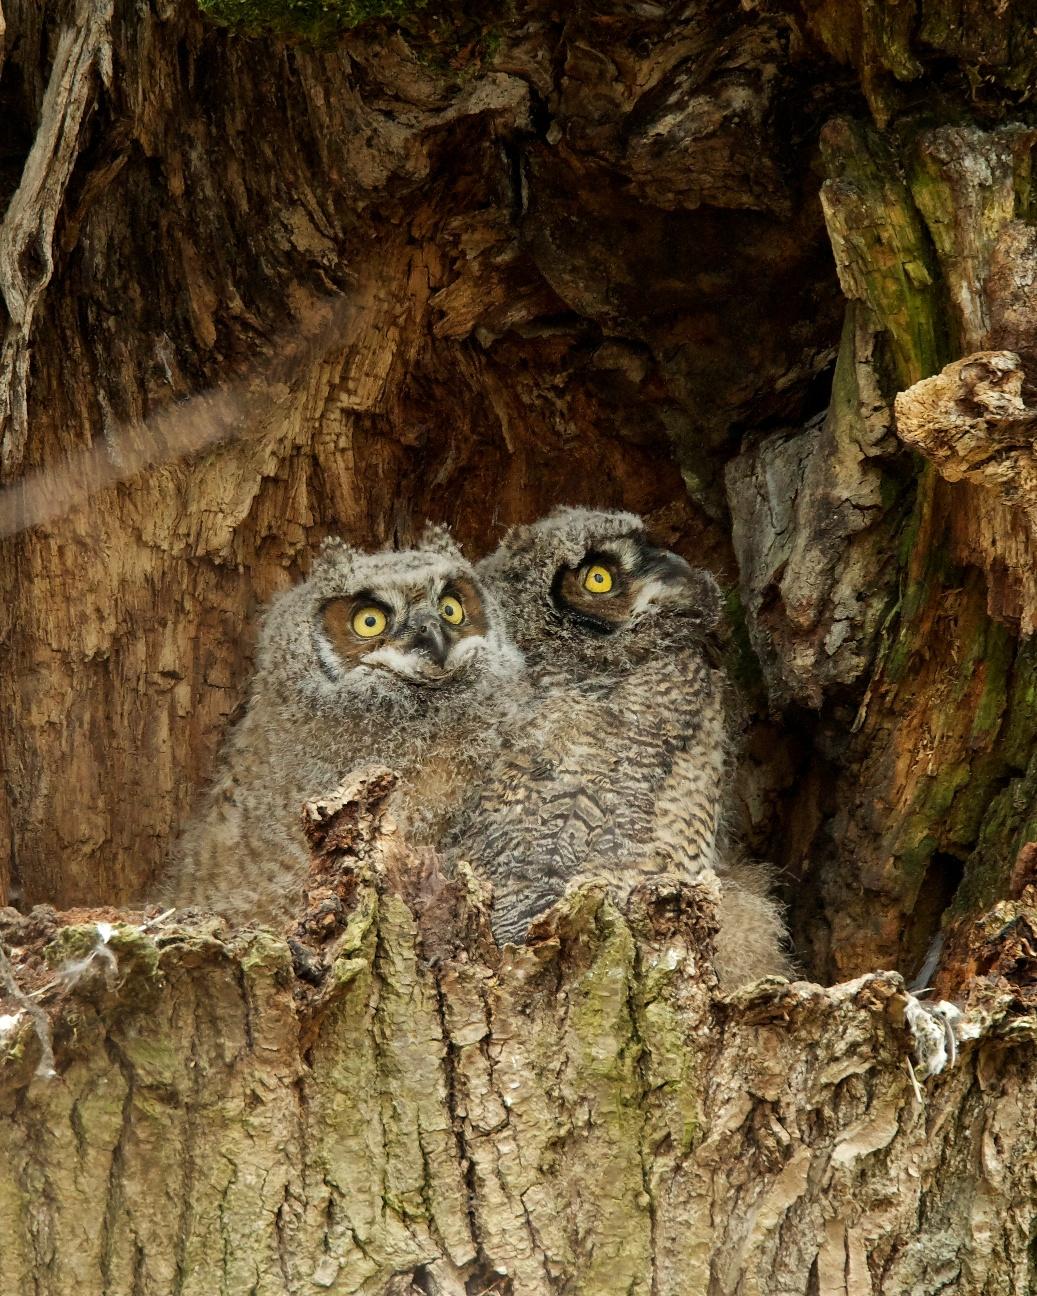 The Great Horned Owl Nest Birdnote